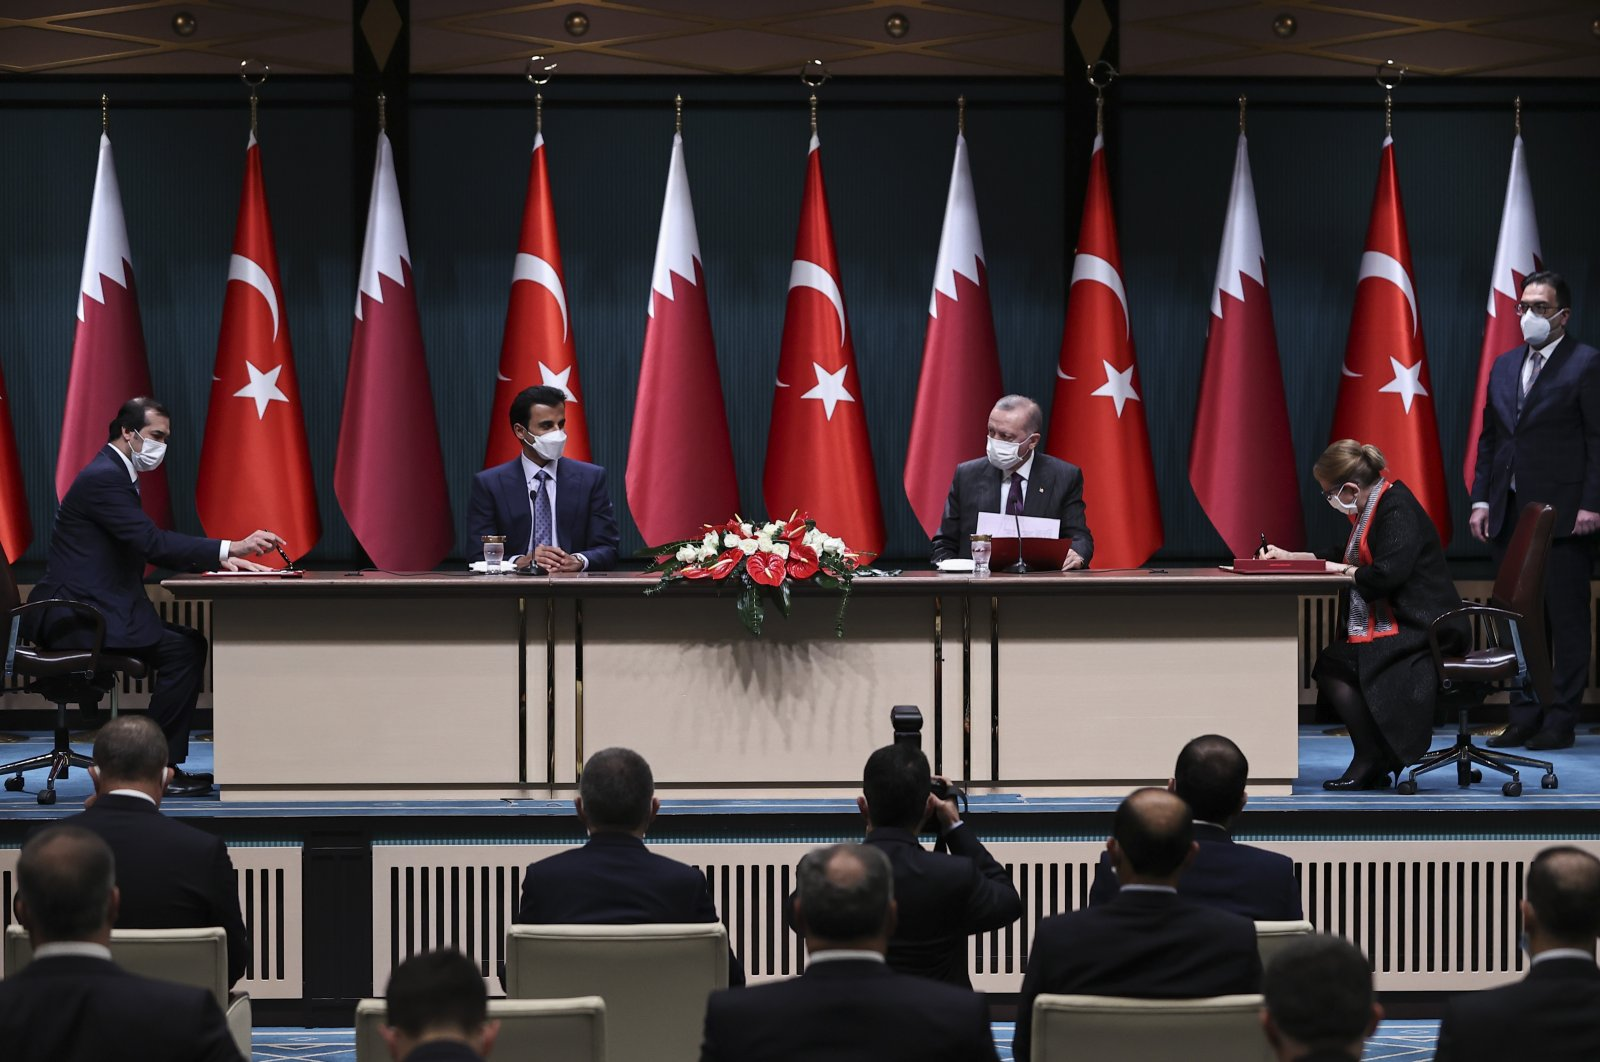 A MoU was signed by Turkey's Trade Minister Ruhsar Pekcan (R) and Qatari Trade and Industry Minister Ali Bin Ahmed Al Kuwari (L) during the meeting chaired by President Recep Tayyip Erdoğan (center R) and Qatari Emir Sheikh Tamim bin Hamad Al Thani (center L), Ankara, Turkey, Nov. 26, 2020. (AA Photo)